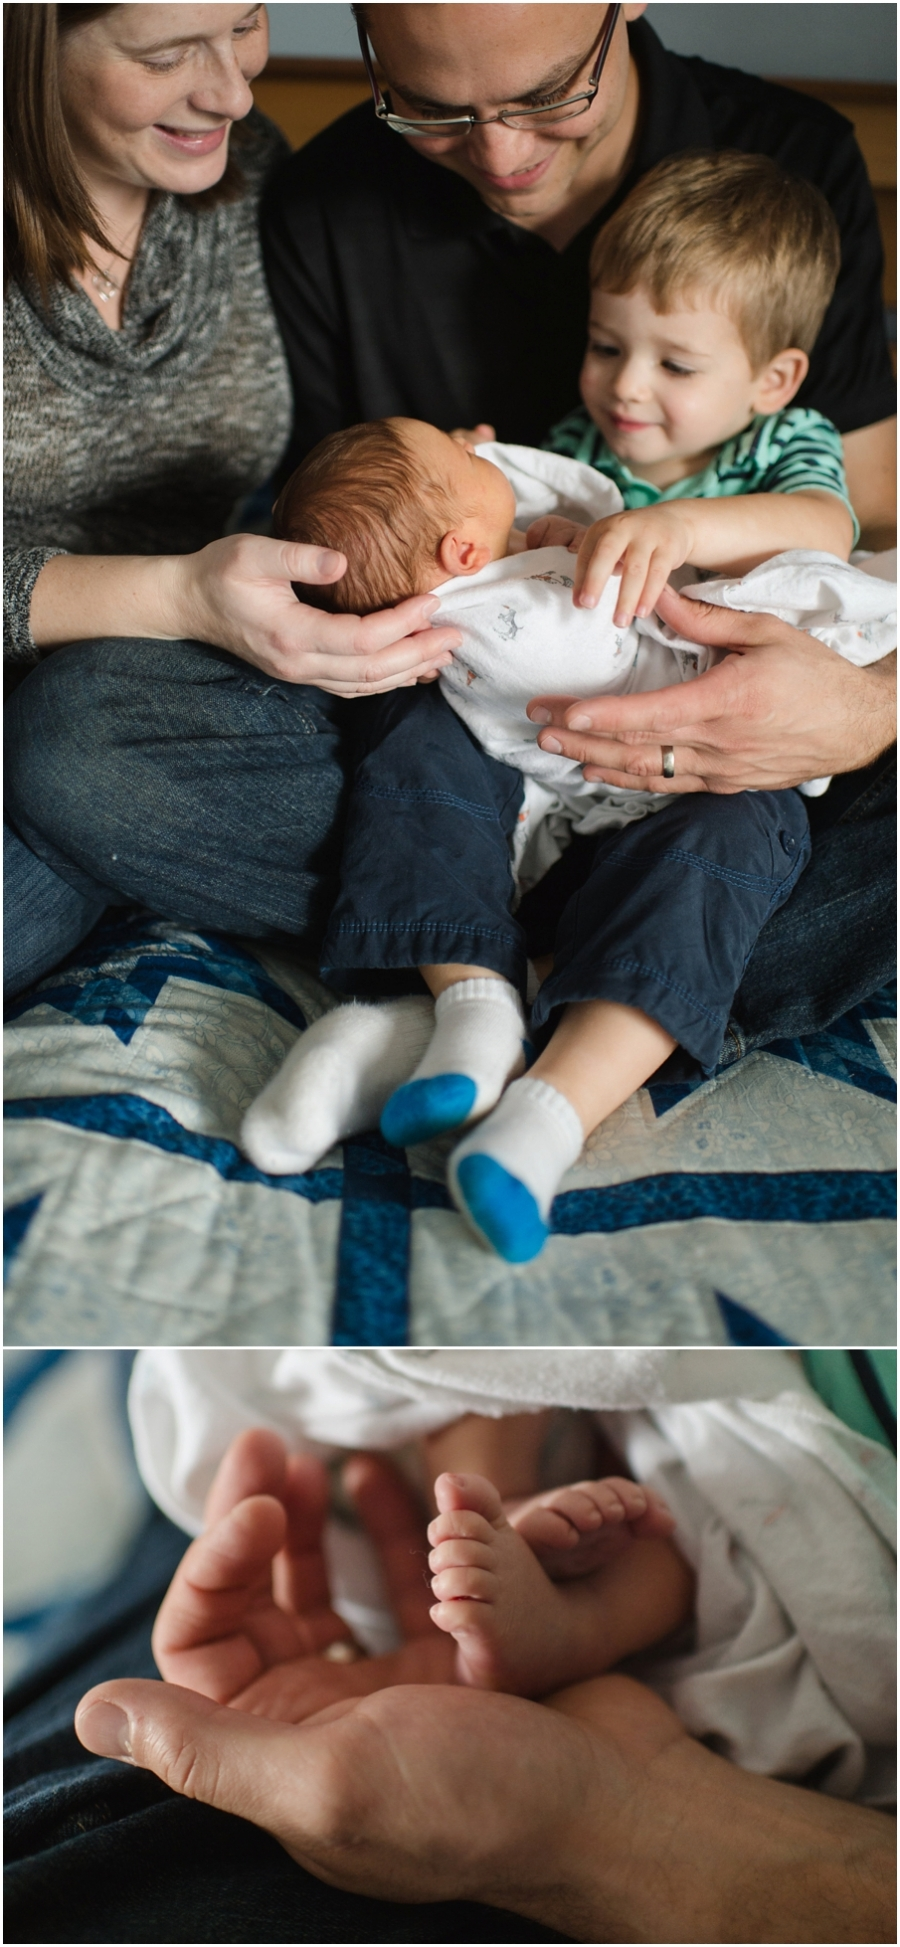 View More: http://freshframephotography.pass.us/baby-ryder-welcome